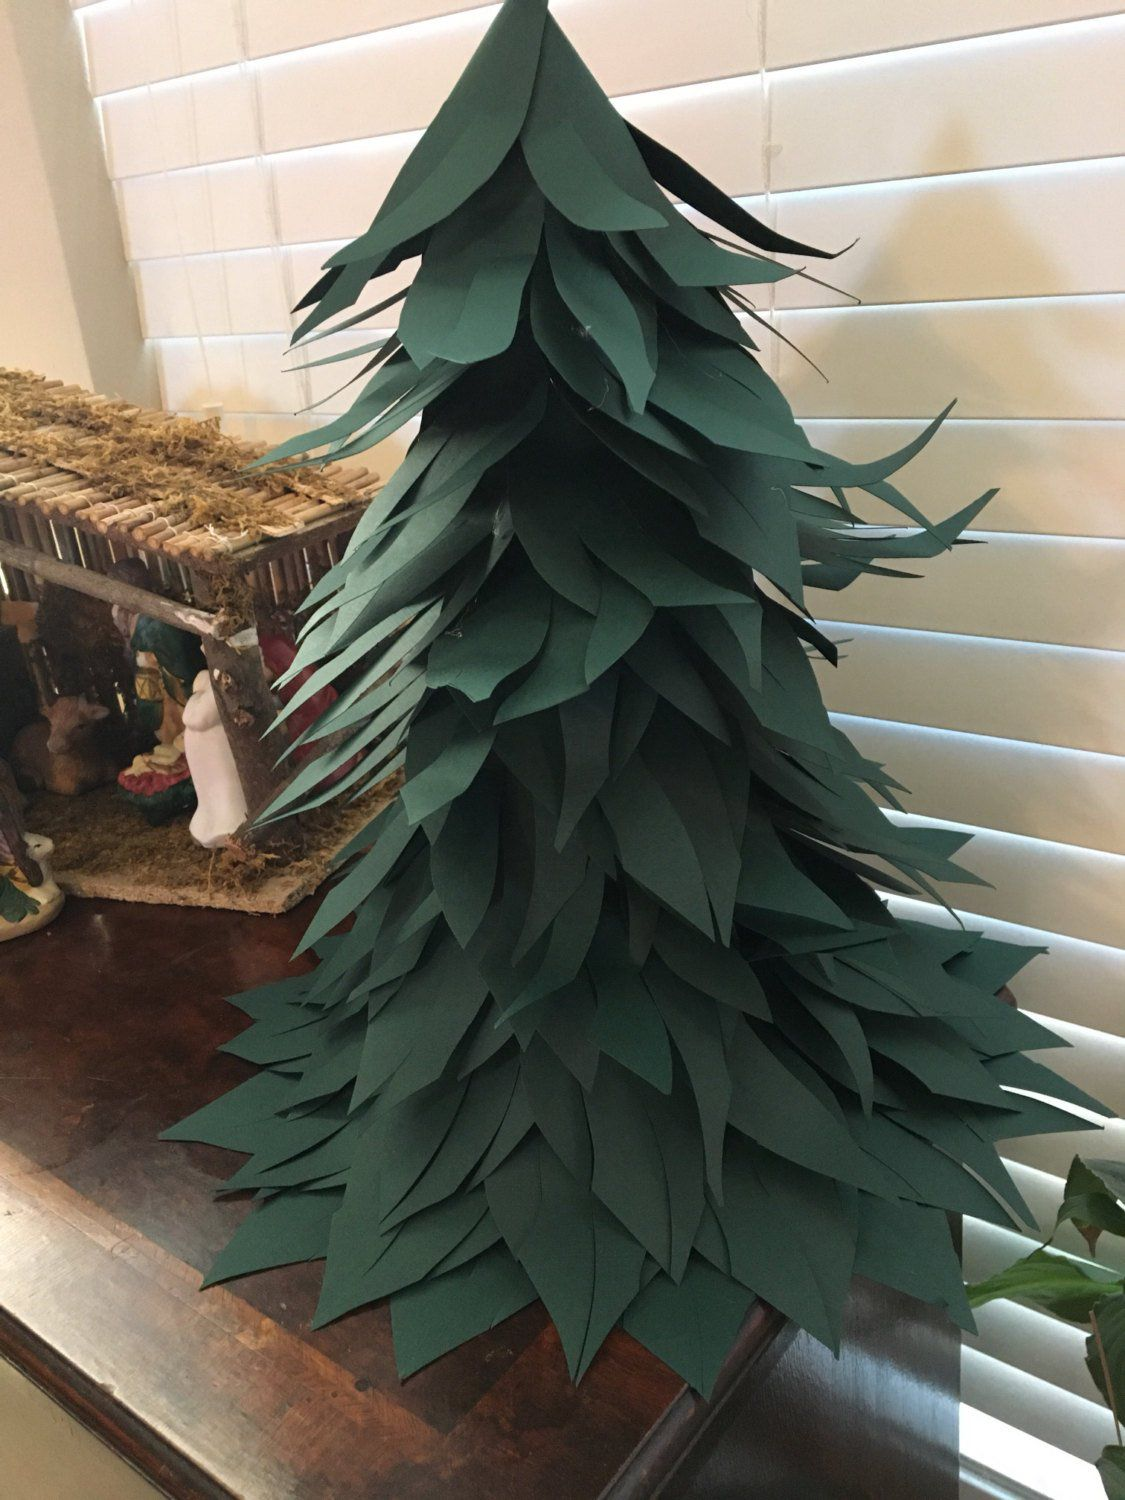 Paper Flower Paper Christmas Trees Green Paper Christmas Etsy In 2020 Paper Flowers Paper Tree Paper Mache Tree